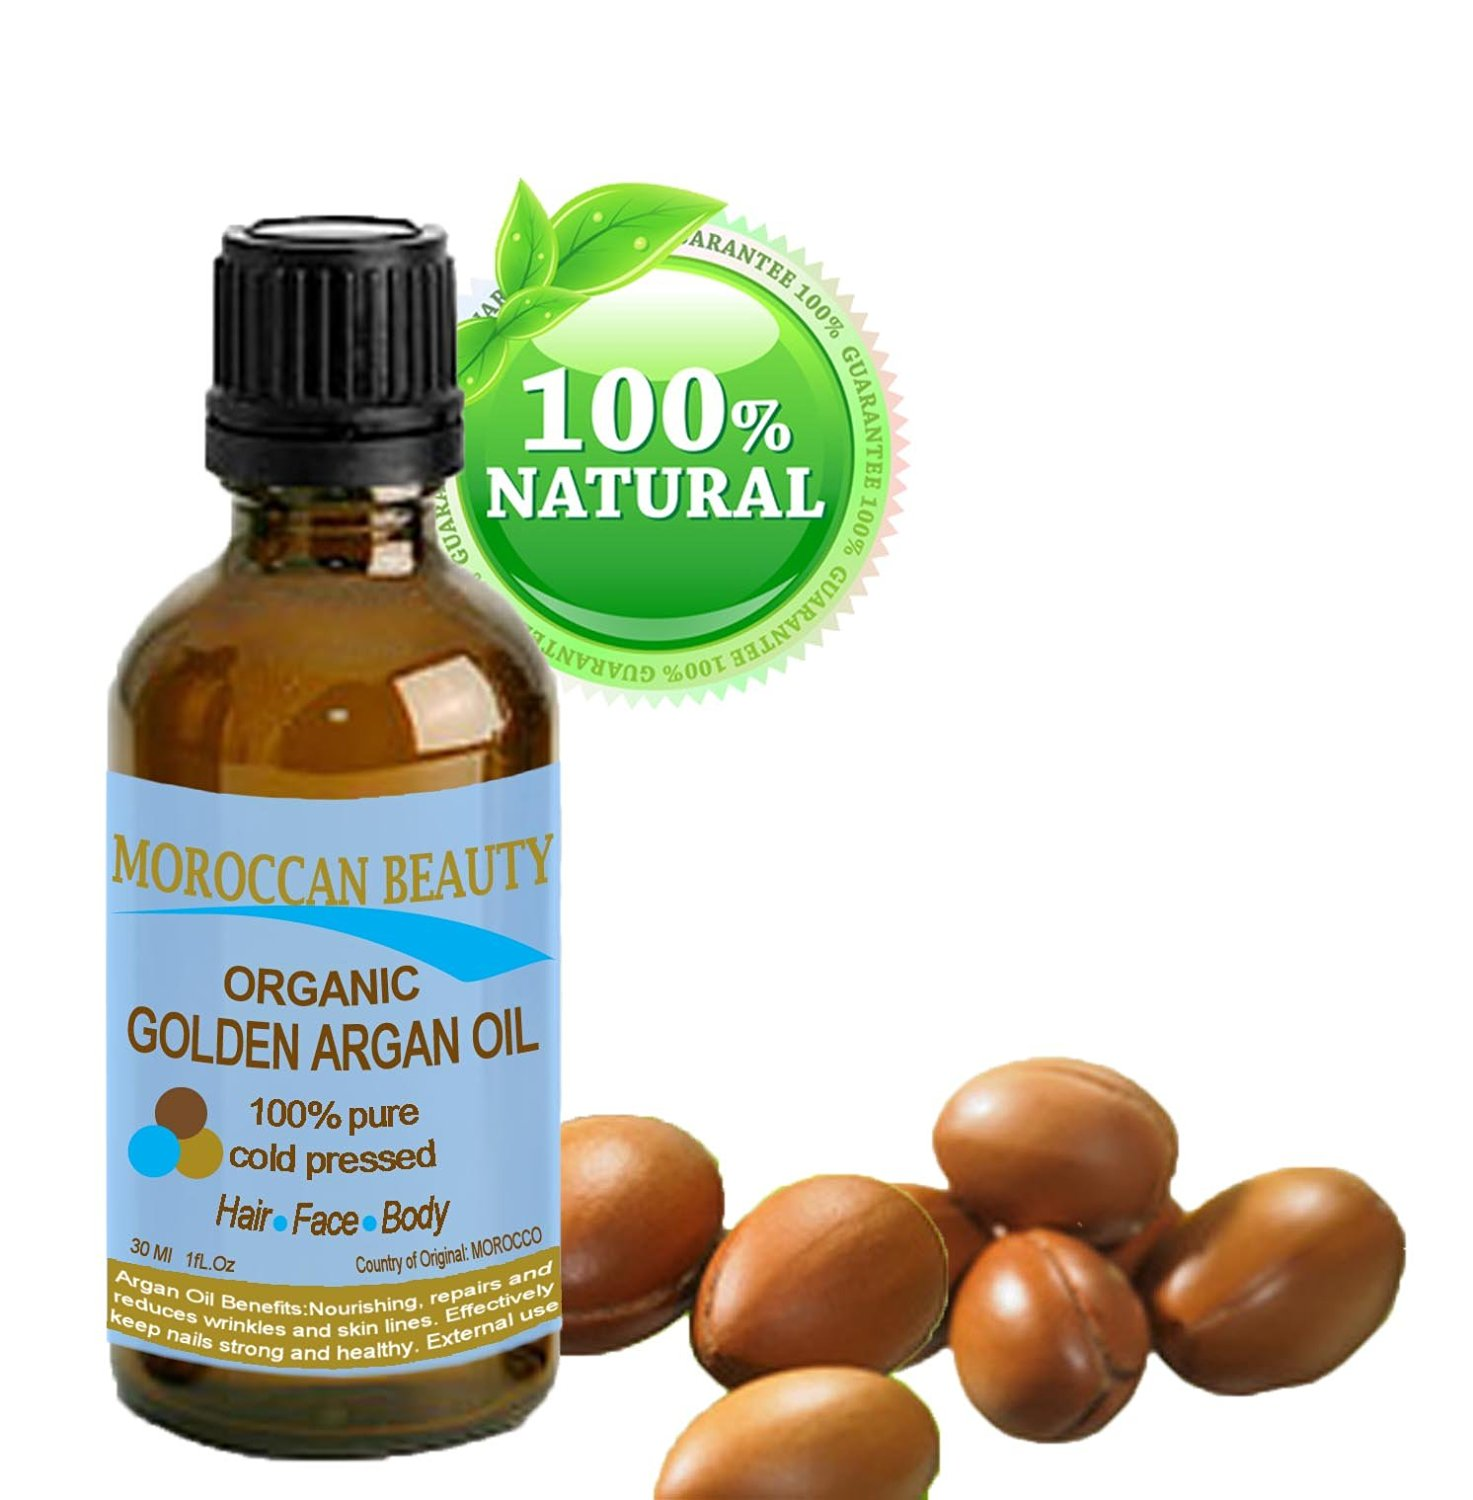 Moroccan Beauty Golden Argan Oil, 100% Pure/ Natural, Certified Organic, for Face, Hair, Nails and Body. 1 oz-30 Ml